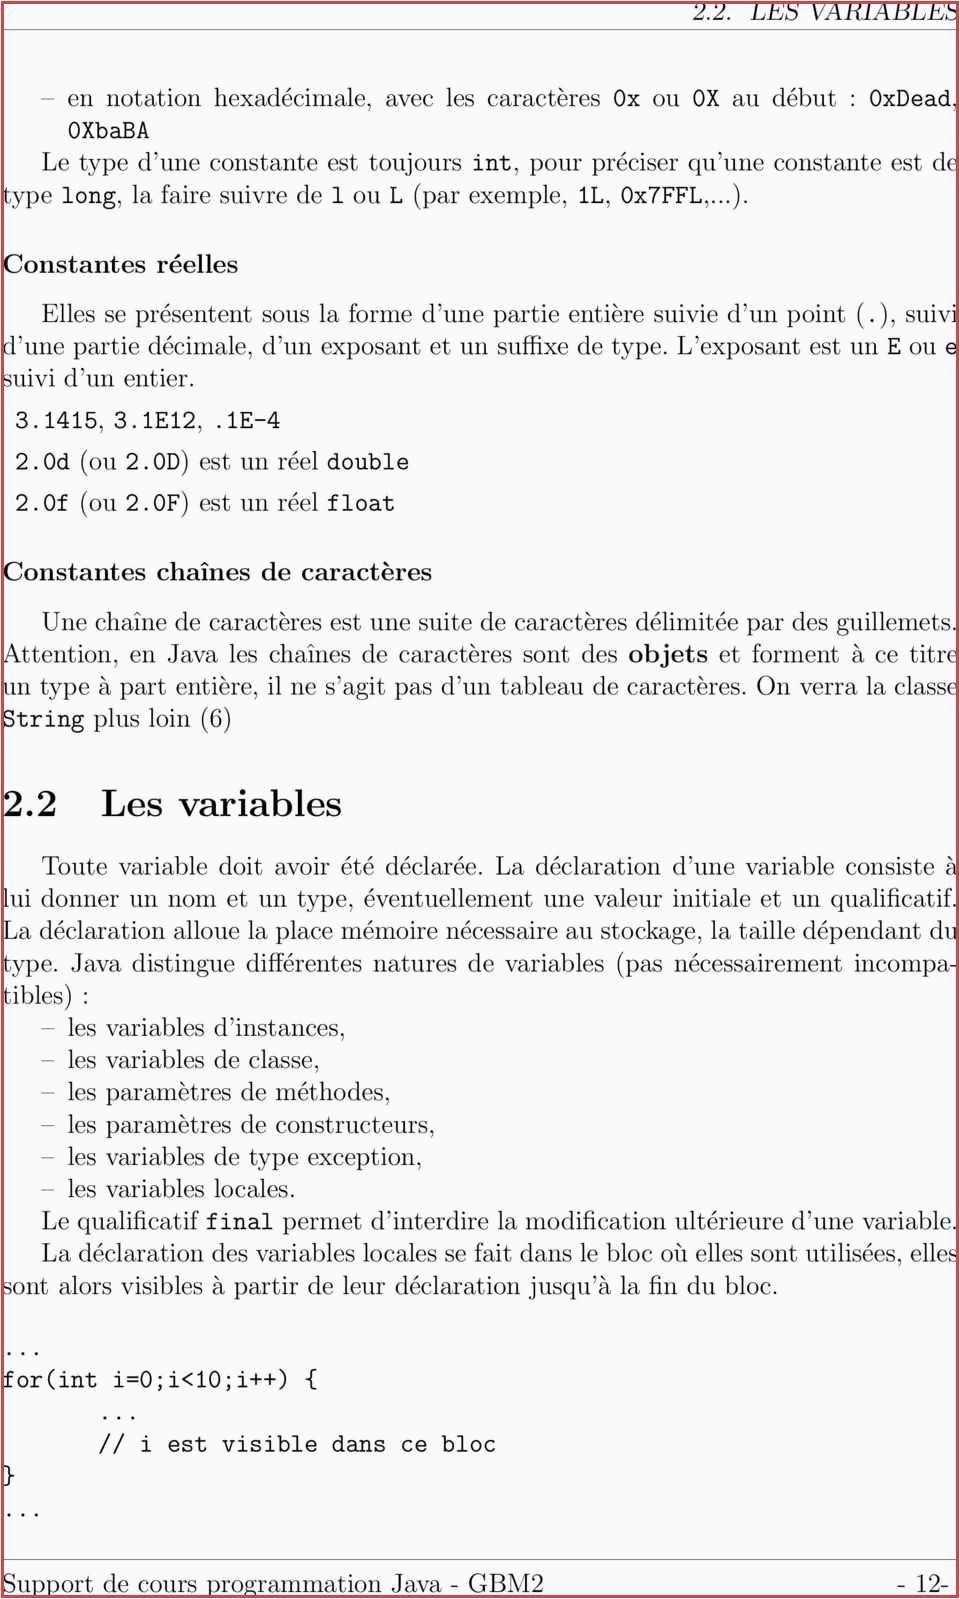 Exemple Lettre De Motivation Vendeur Exemple Cv Et Lettre De Motivation Model Lettre Motivation 10 Cv